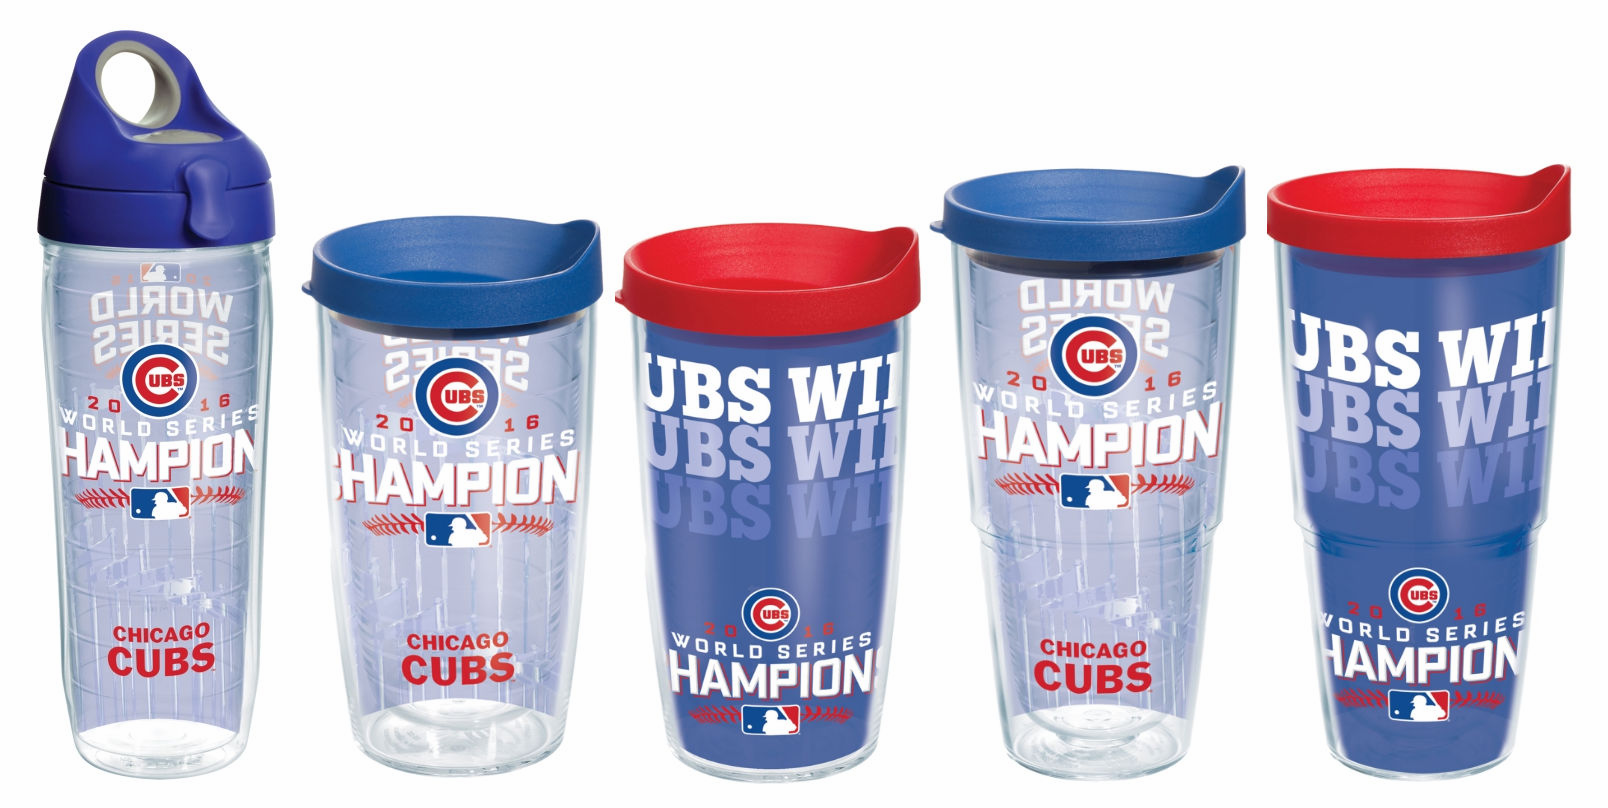 Chicago Cubs 2016 World Series Champions Cups with Lids by Tervis